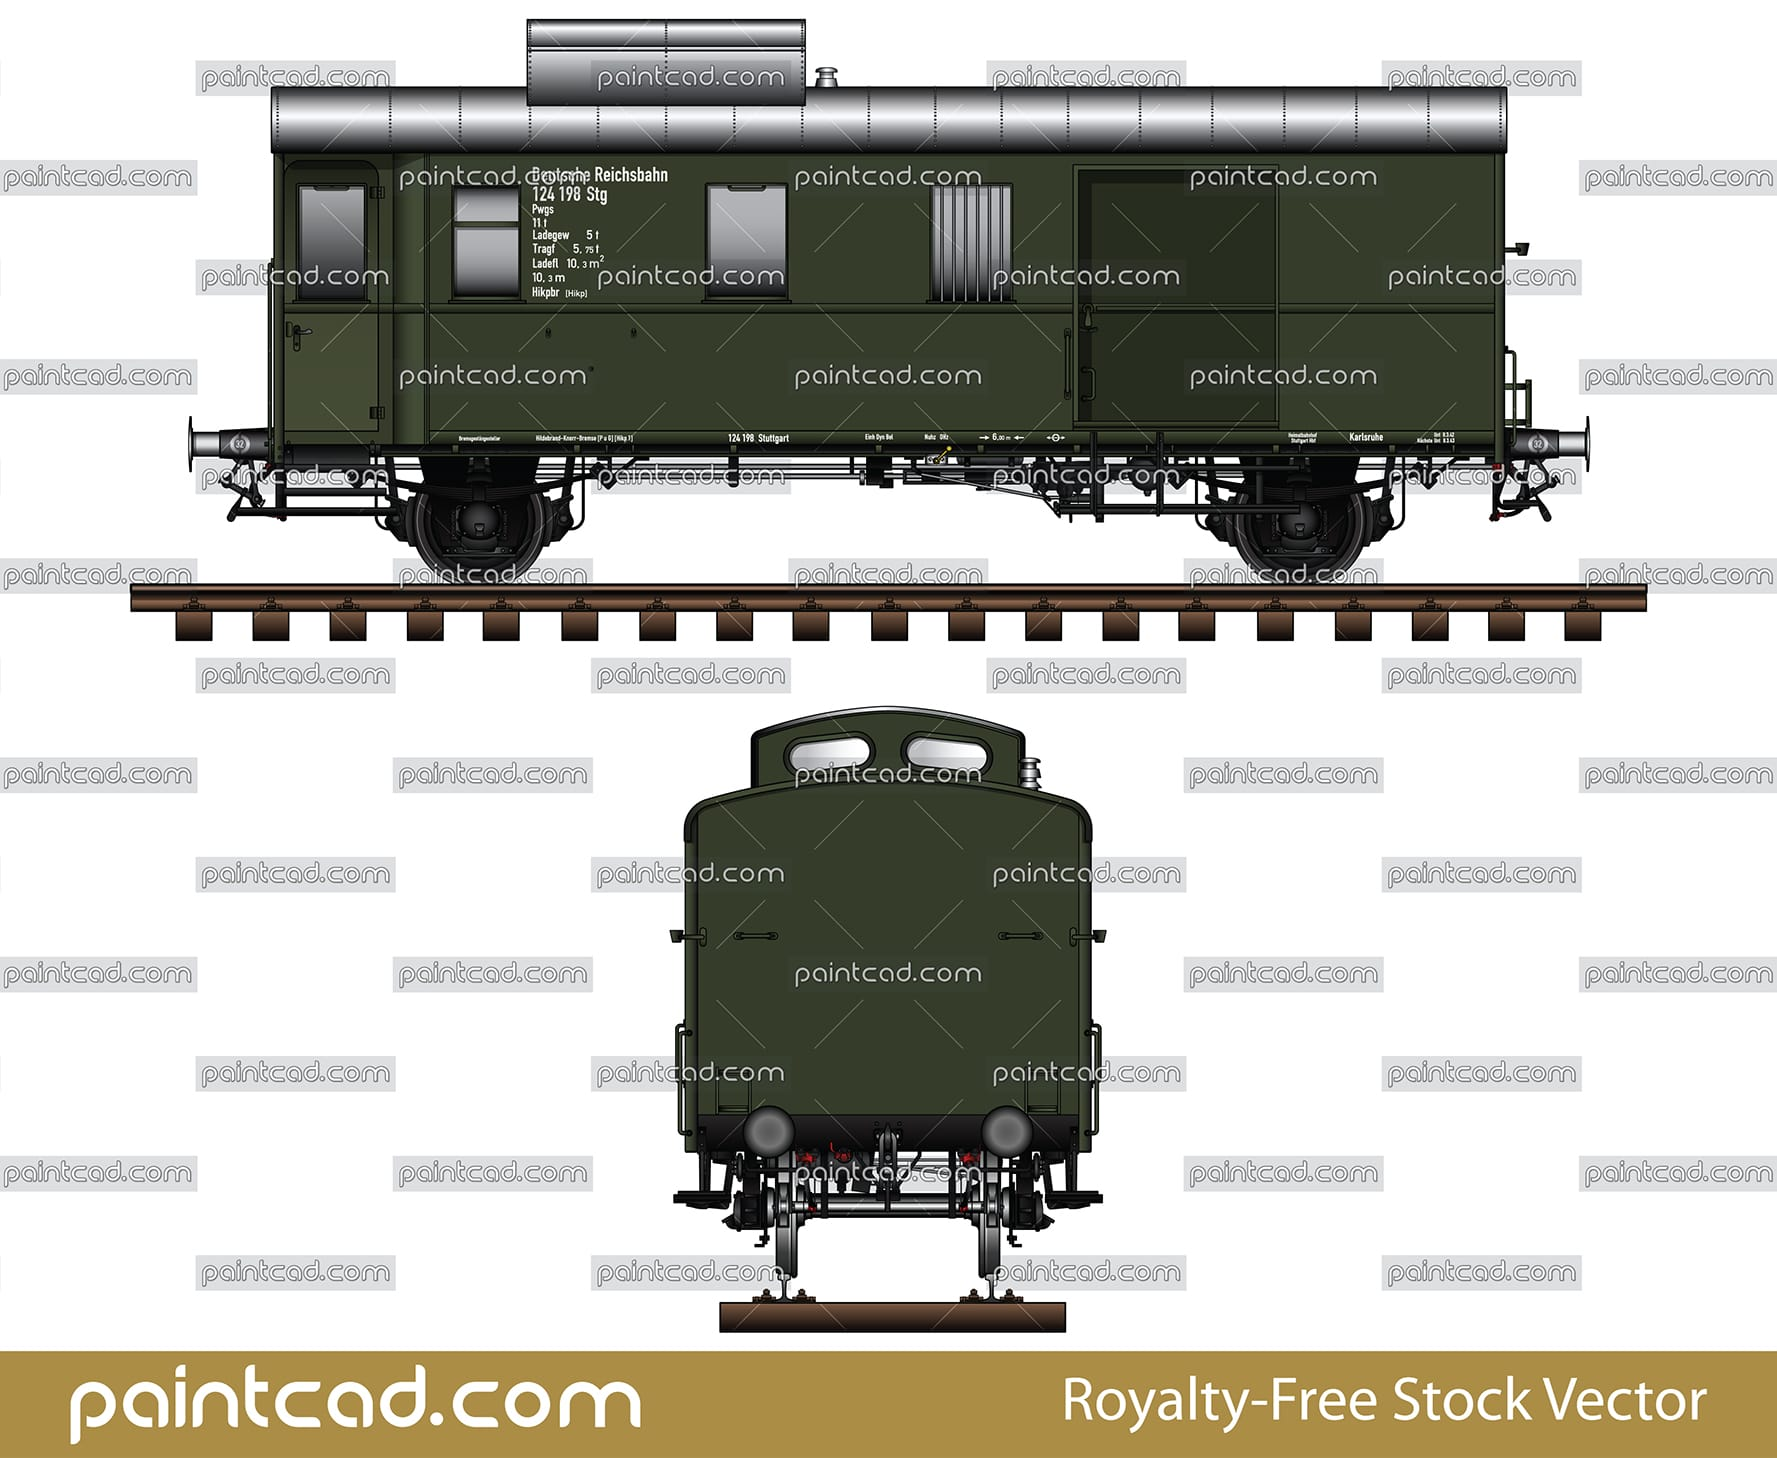 Postal railway wagon Pwgs-41 from Deutsche Reichsbahn era - vector illustration